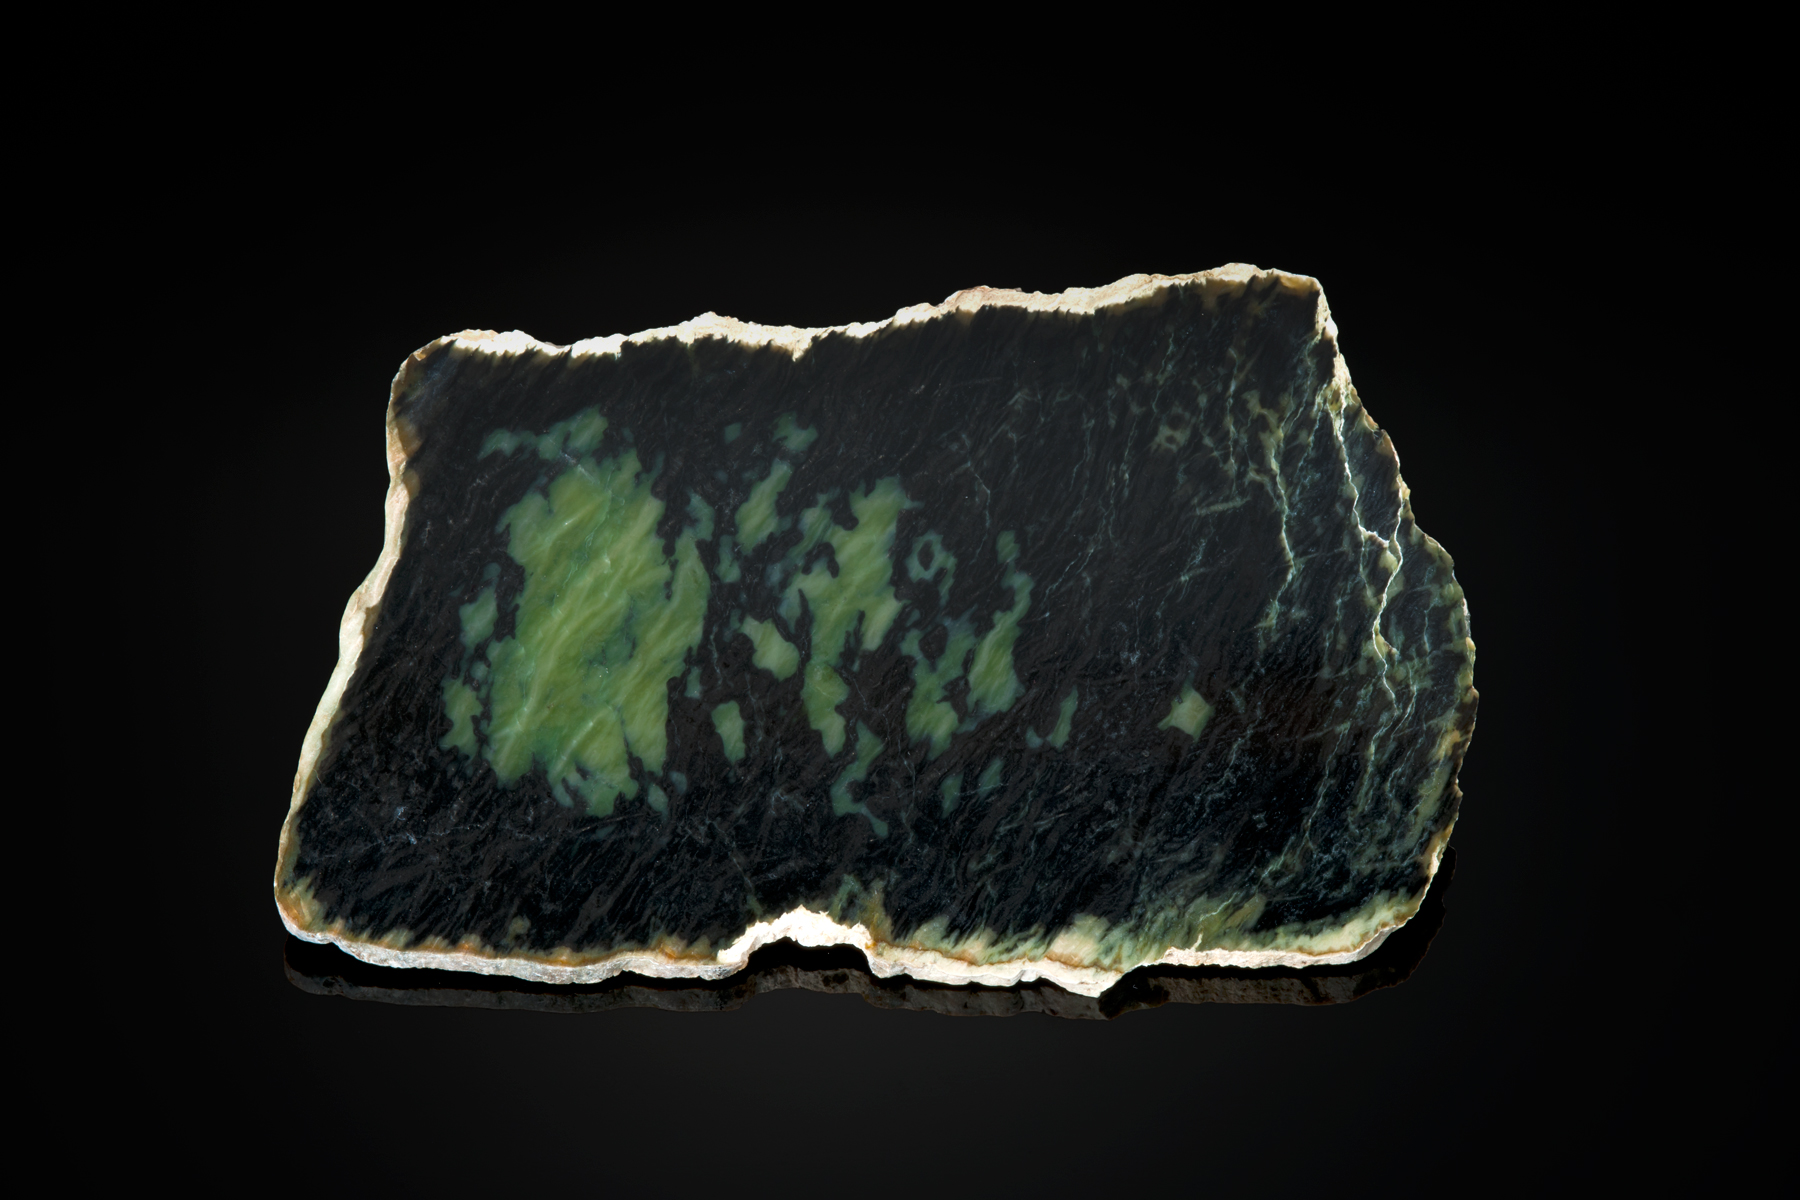 A piece of patterned jade is shown above that displays best in transmitted light.  (Photo: Robert Weldon)